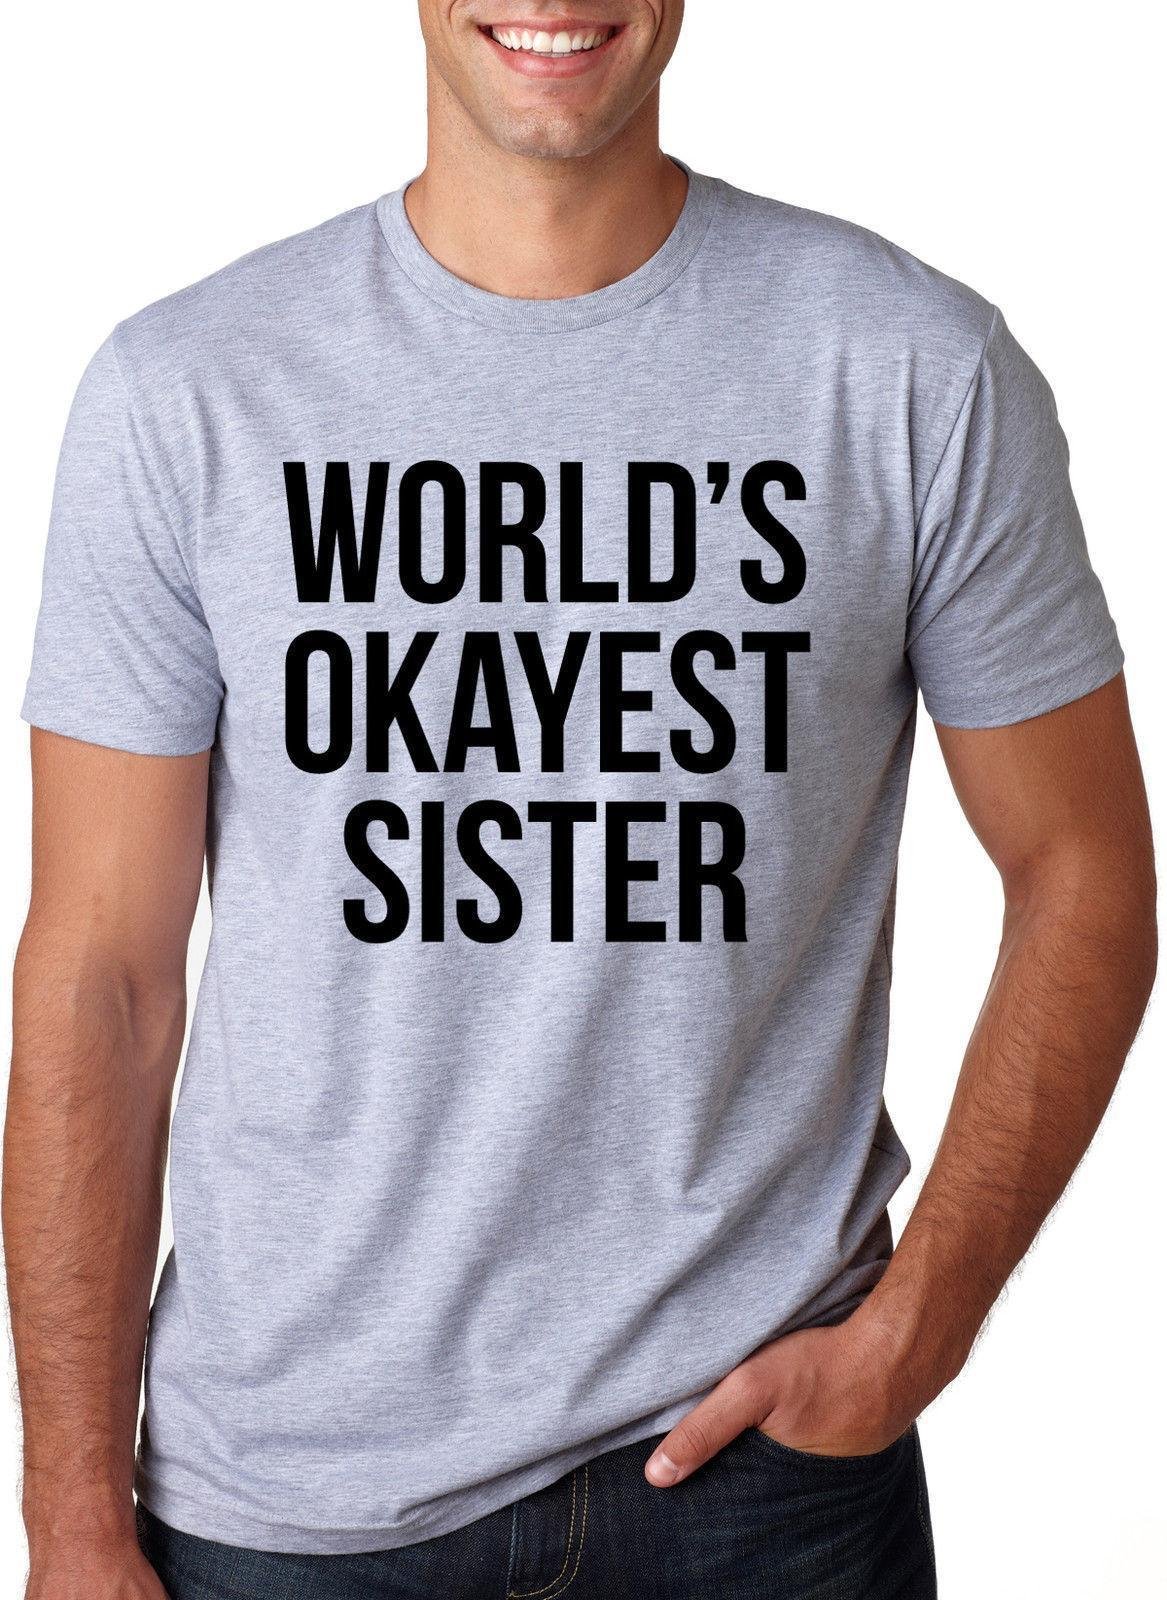 dad3c201b World's Okayest Sister T Shirt Funny Sisters Siblings Tee on A Men's Tee T- Shirt O-Neck Fashion Casual High Quality Print